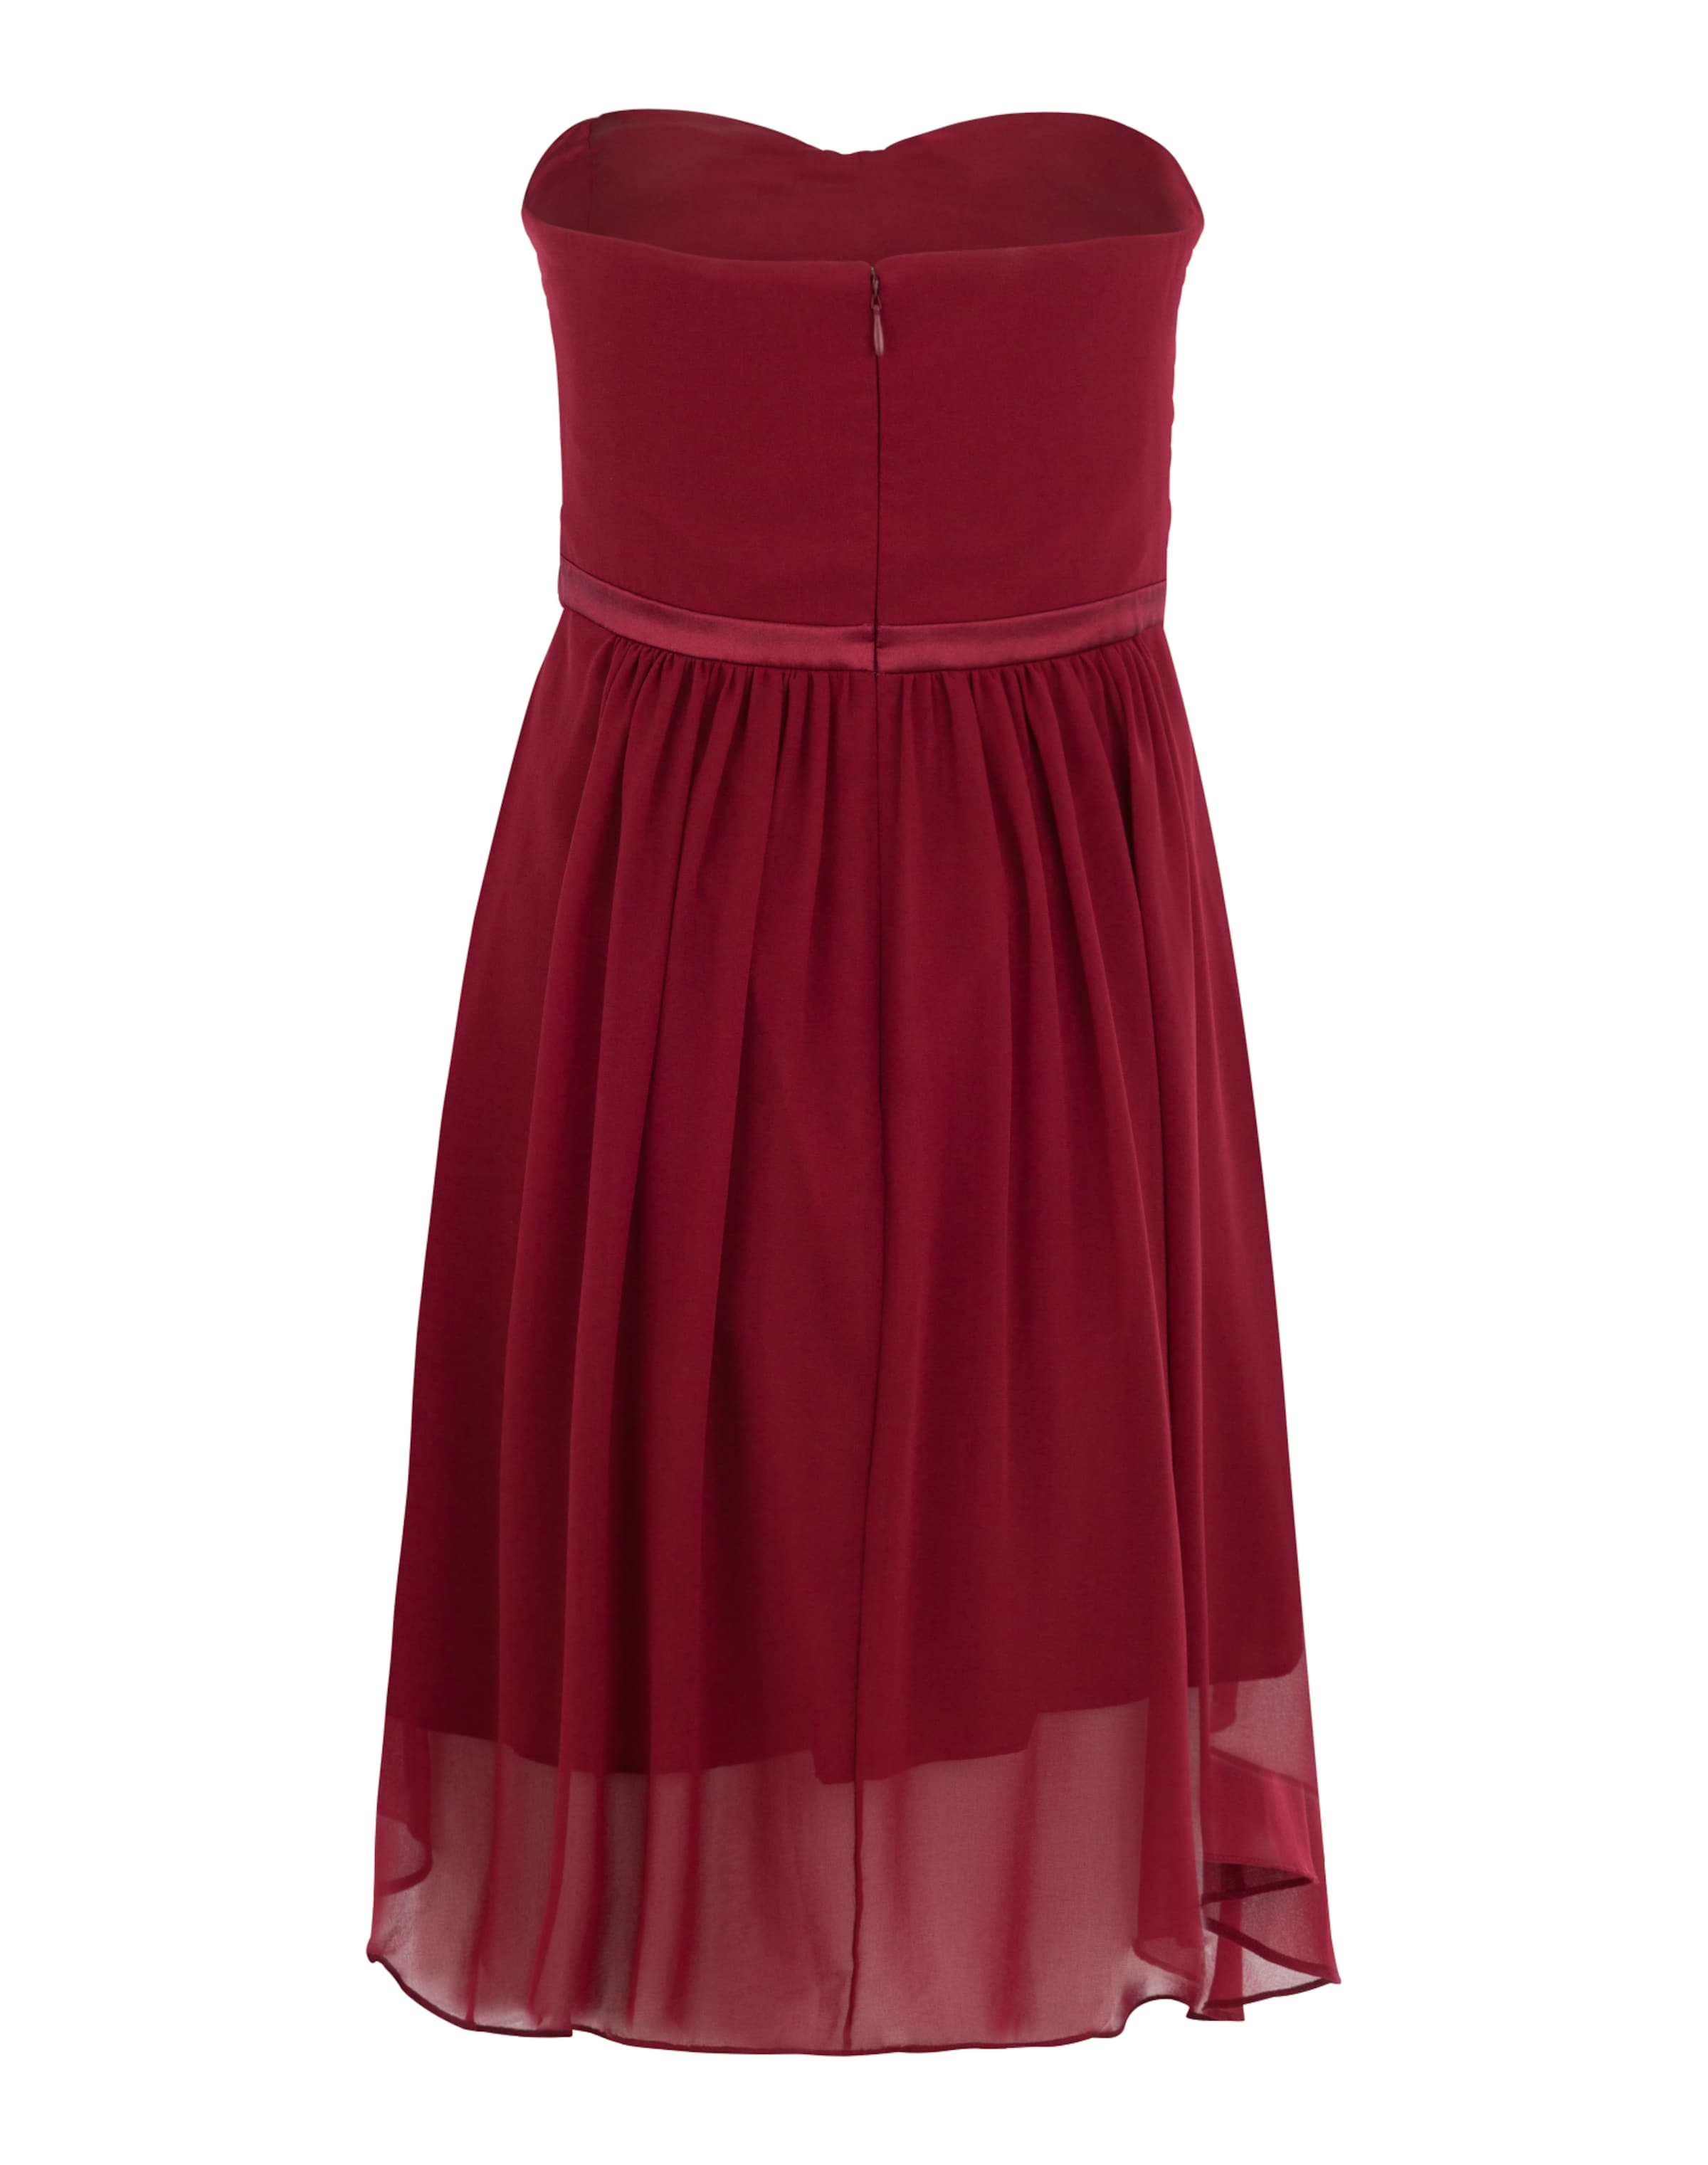 Mont Rot Vera In Vm Bandeau cocktailkleid AcS54jLq3R